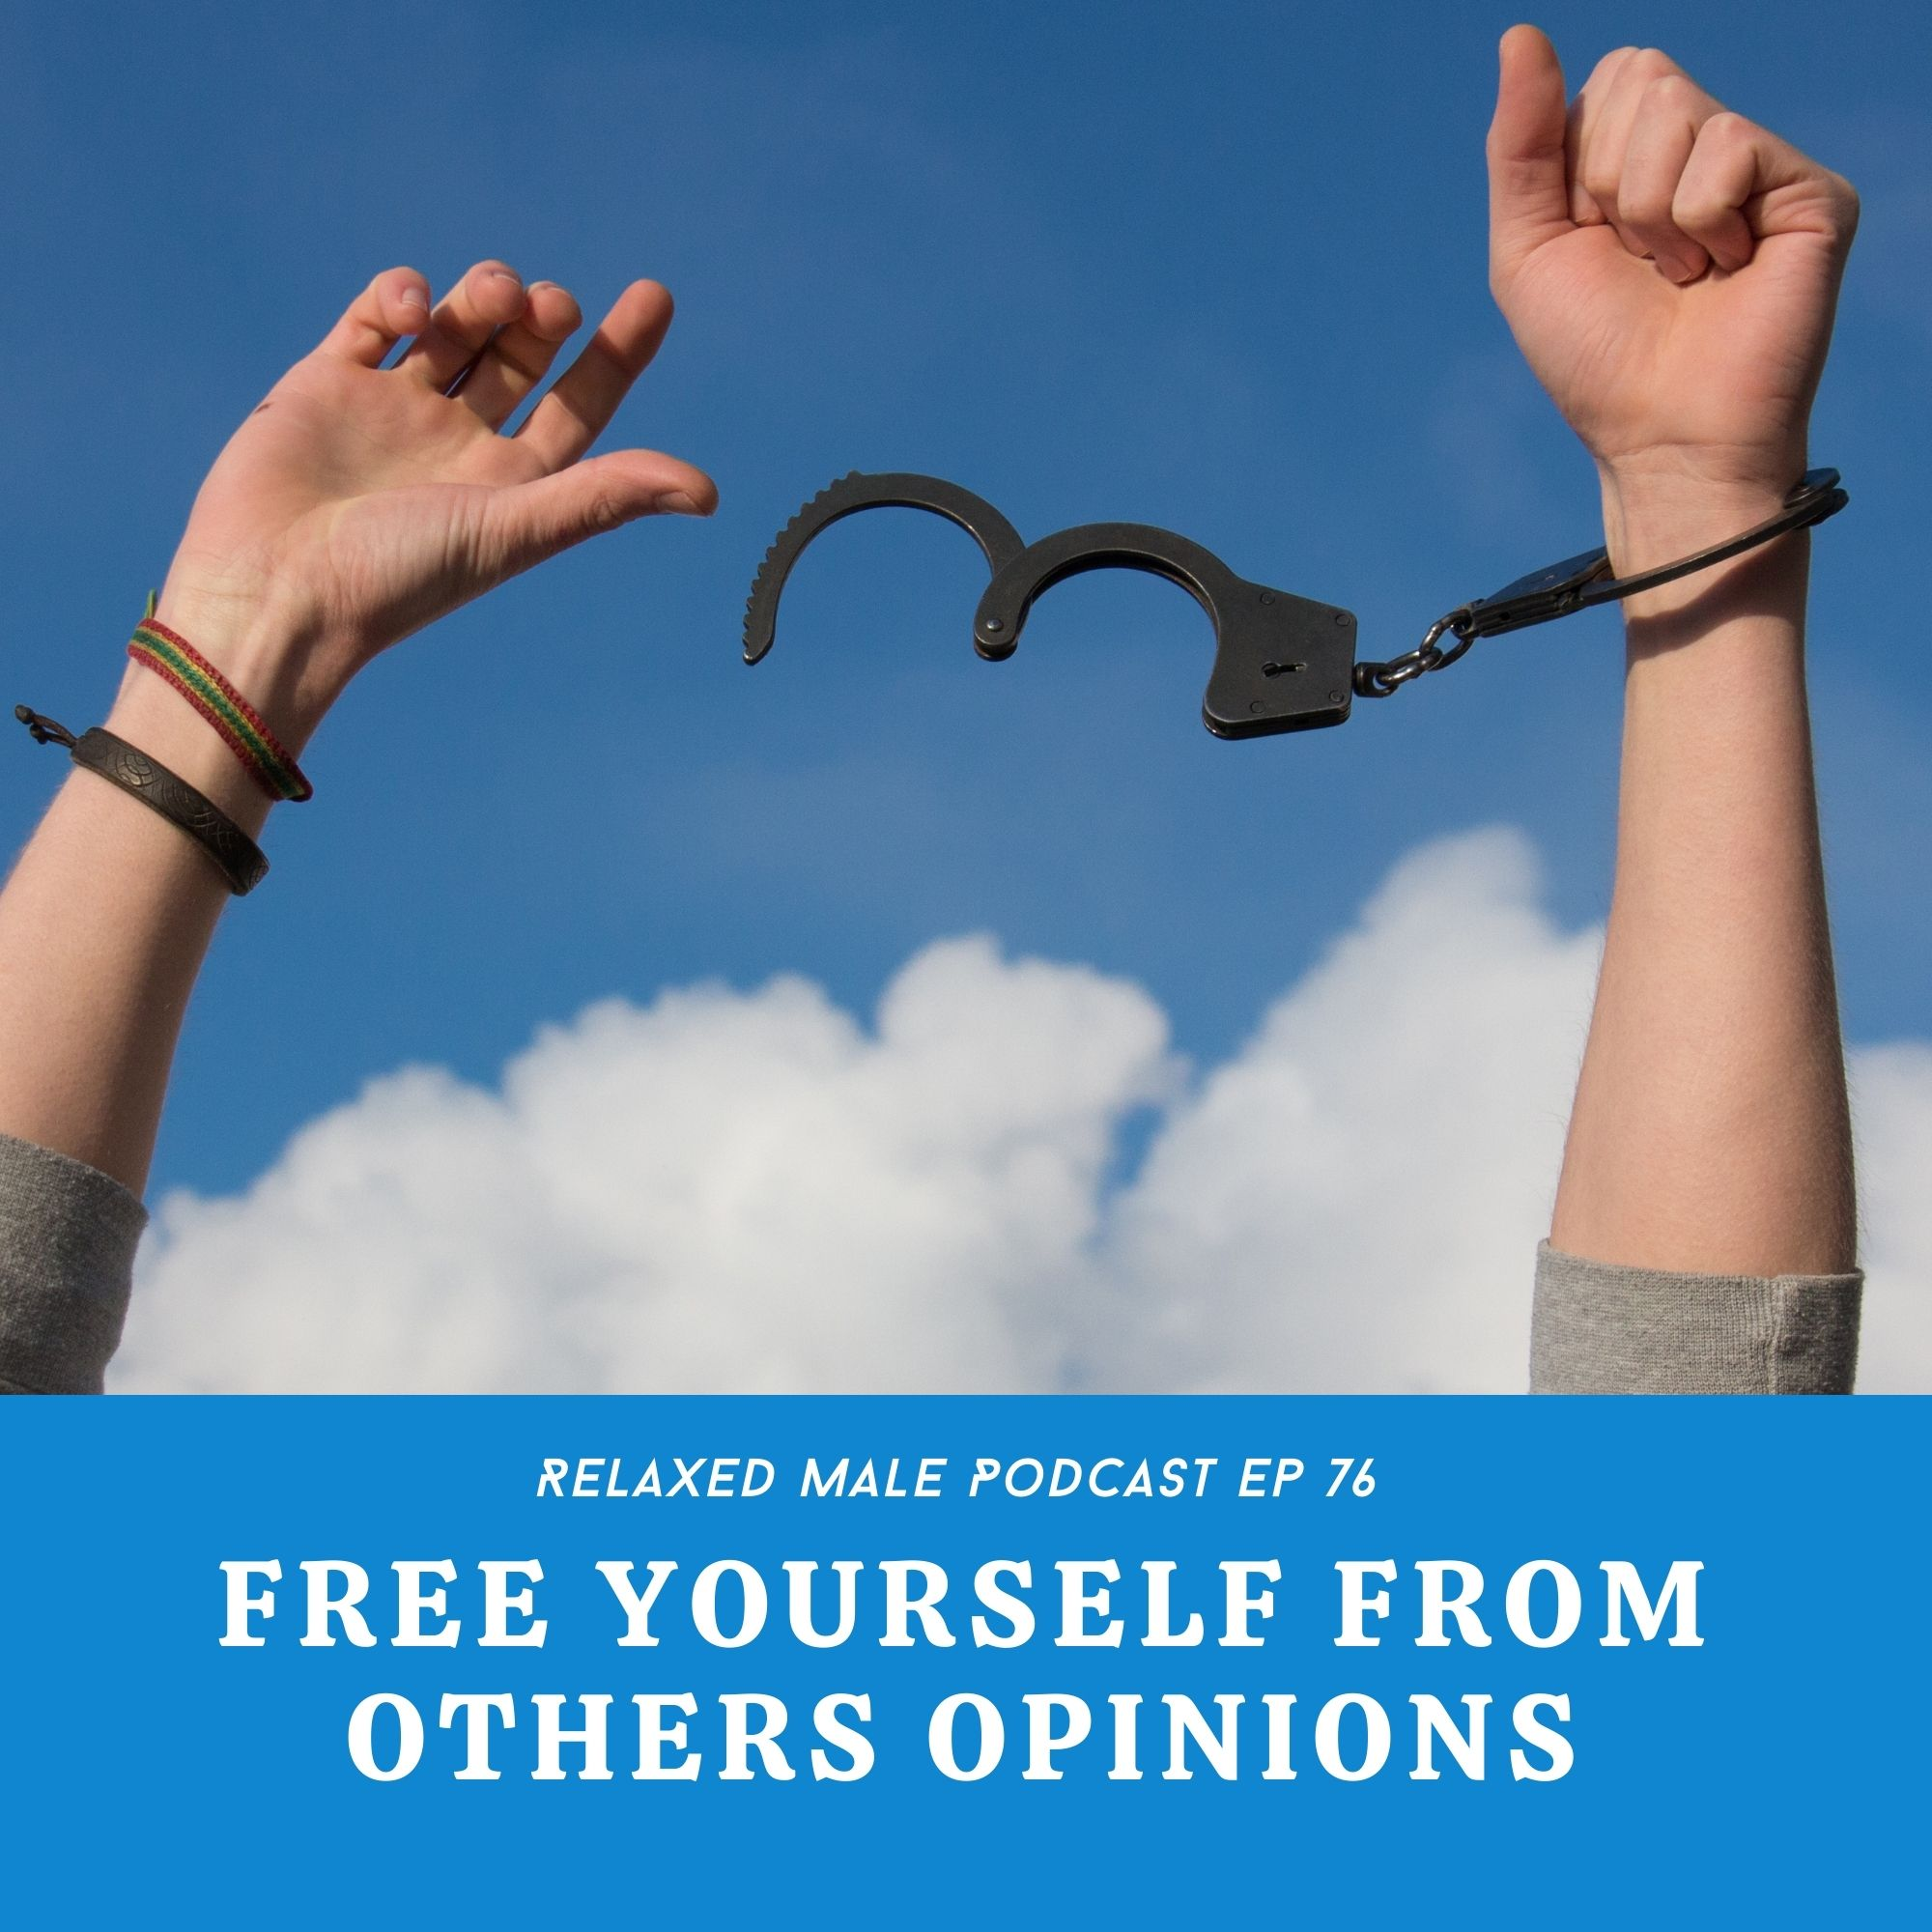 Free Yourself From The Opinion of Others